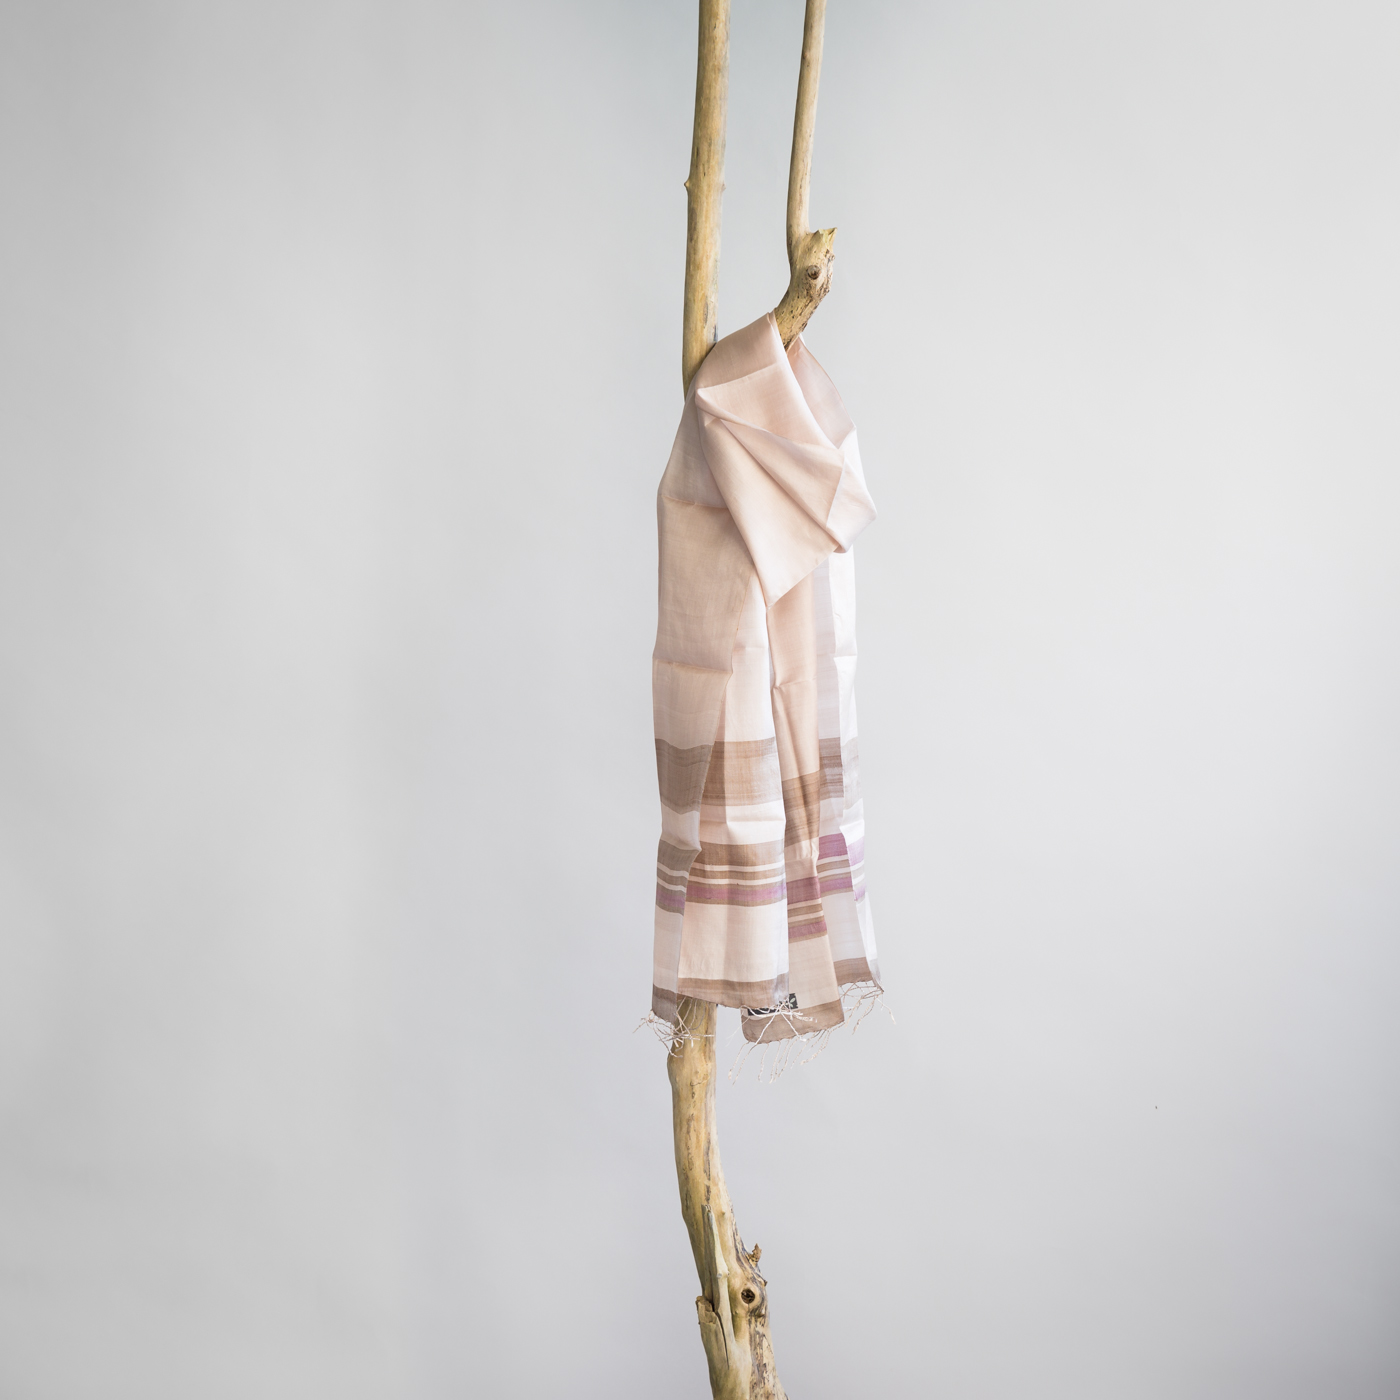 Silk fair trade scarf purify